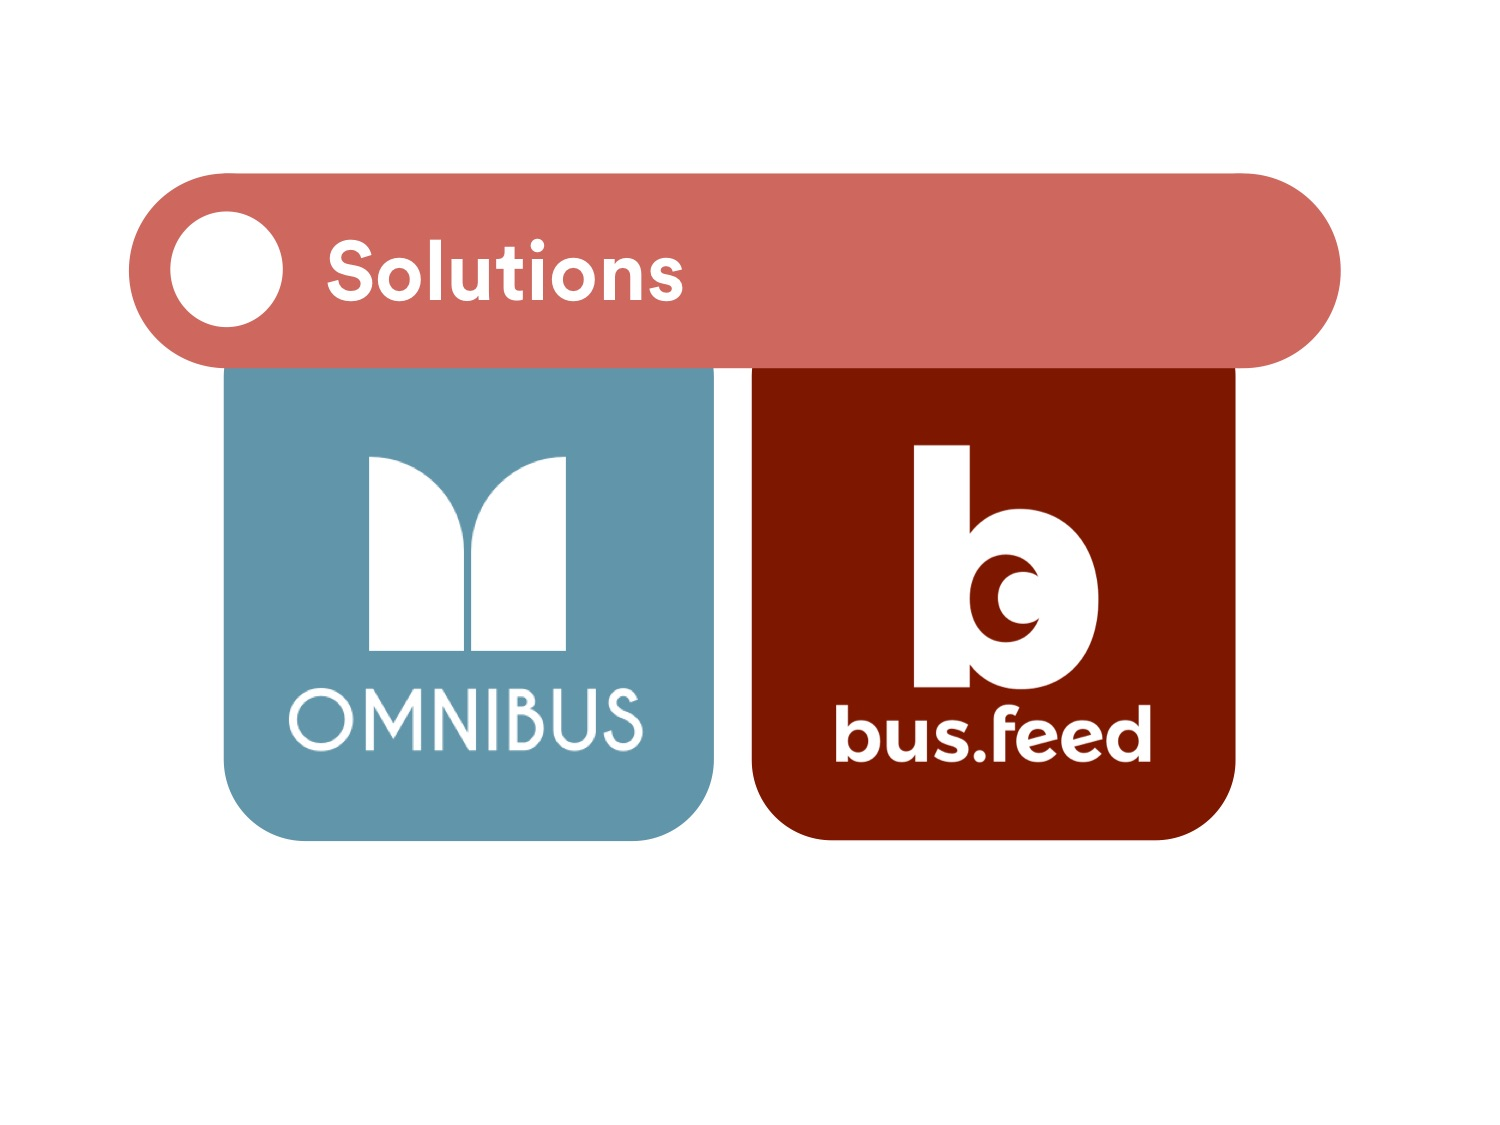 Omnibus - Our vision of improved smart bus - a bus for all | bus.feed - Companion all-in-one commuting app optimized for Omnibus